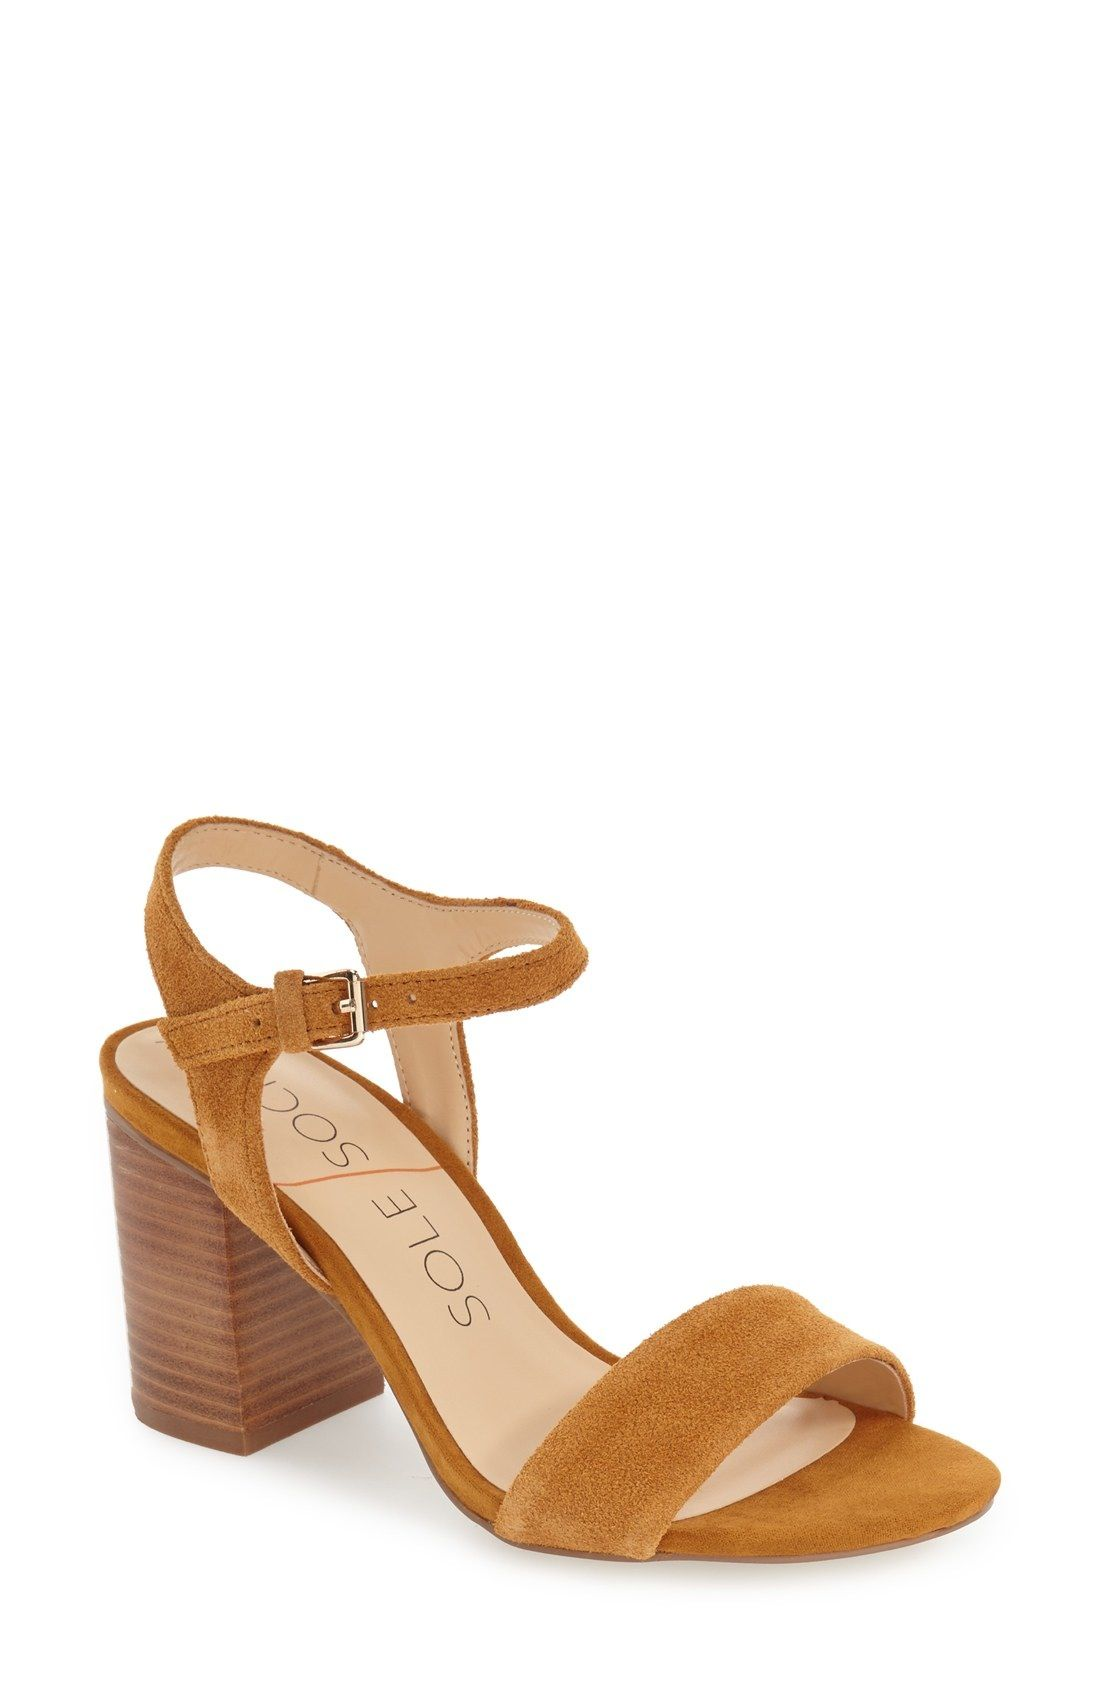 de9984da088c Sole Society  Linny  Ankle Strap Sandal (Women) available at  Nordstrom